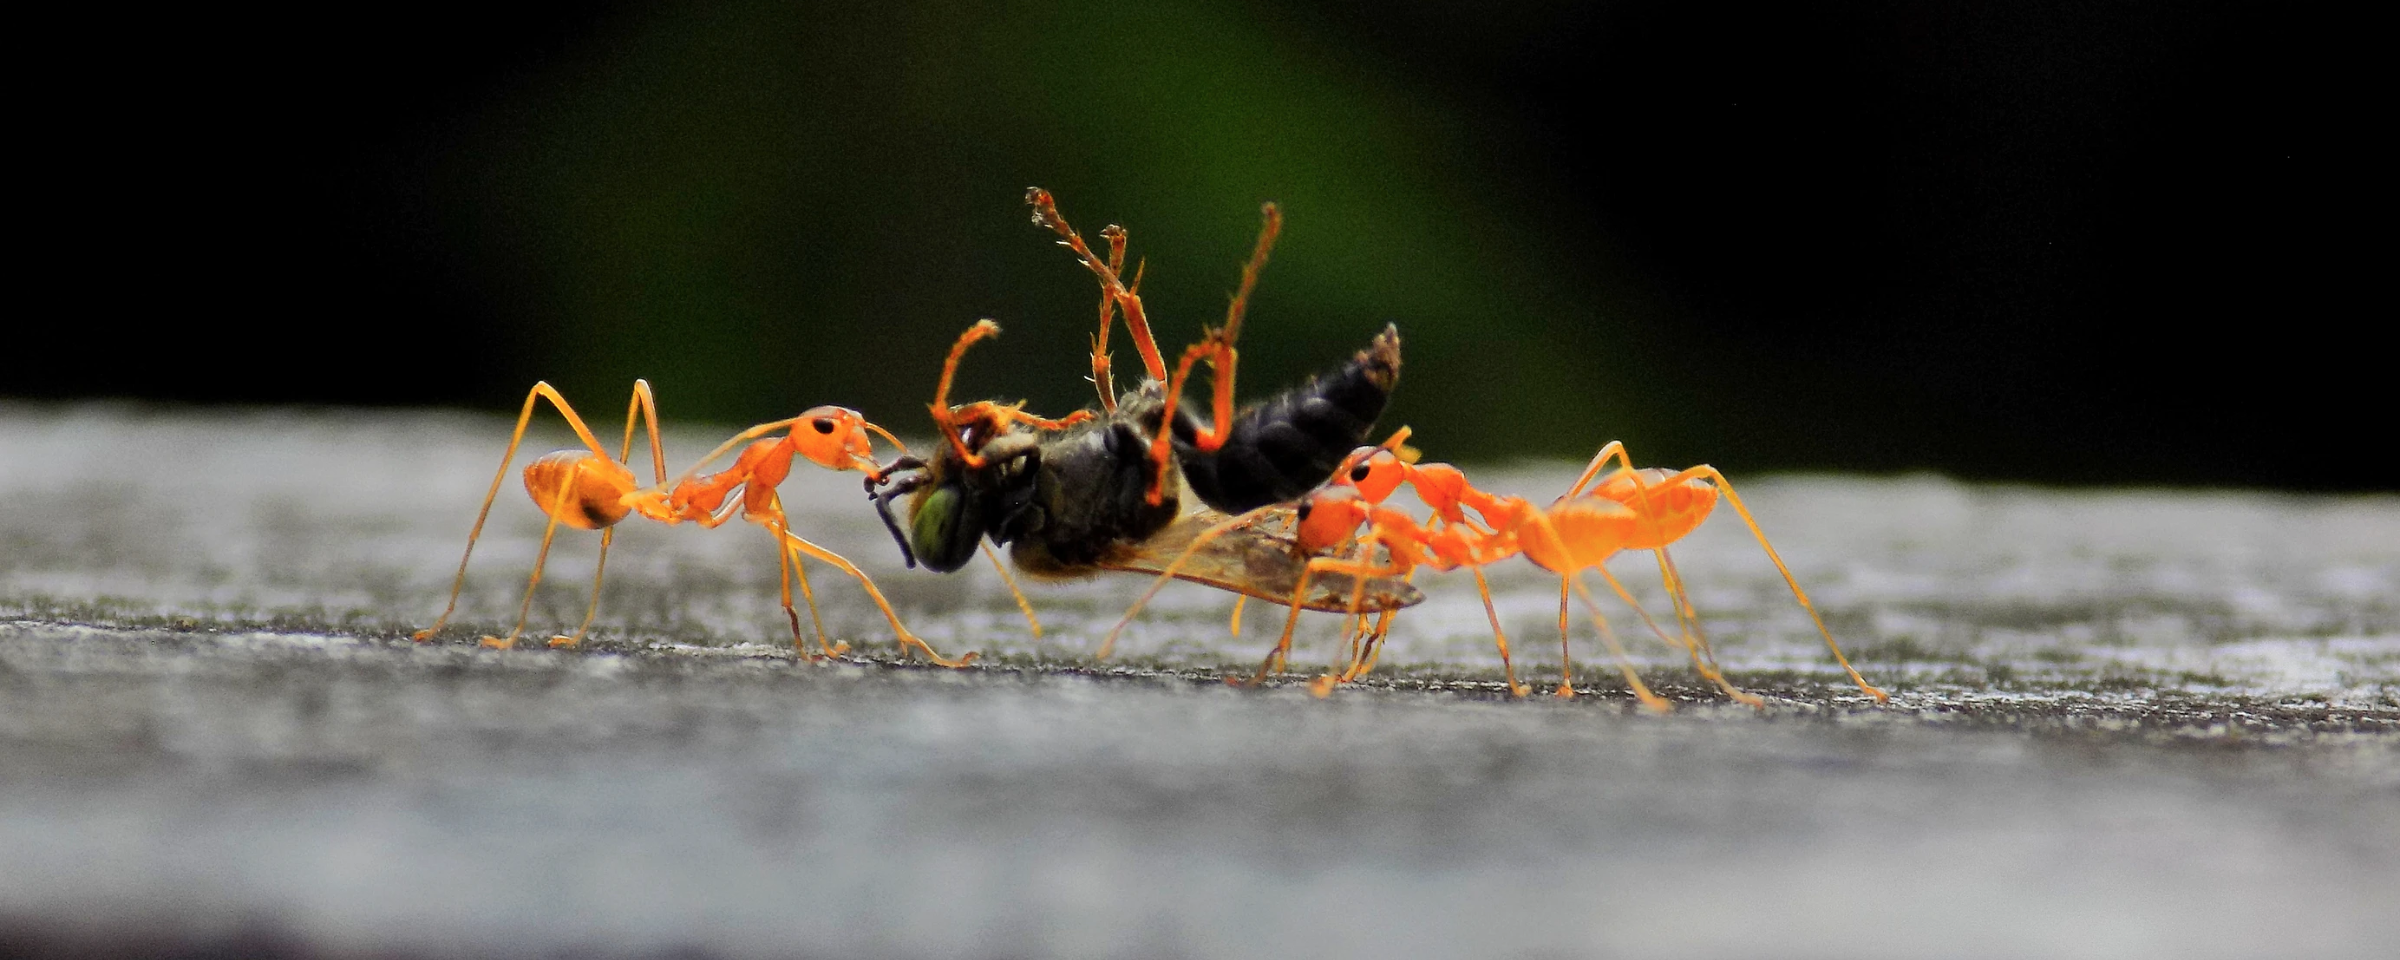 Two ants carrying a bug. Photo by Parvana Praveen on Unsplash